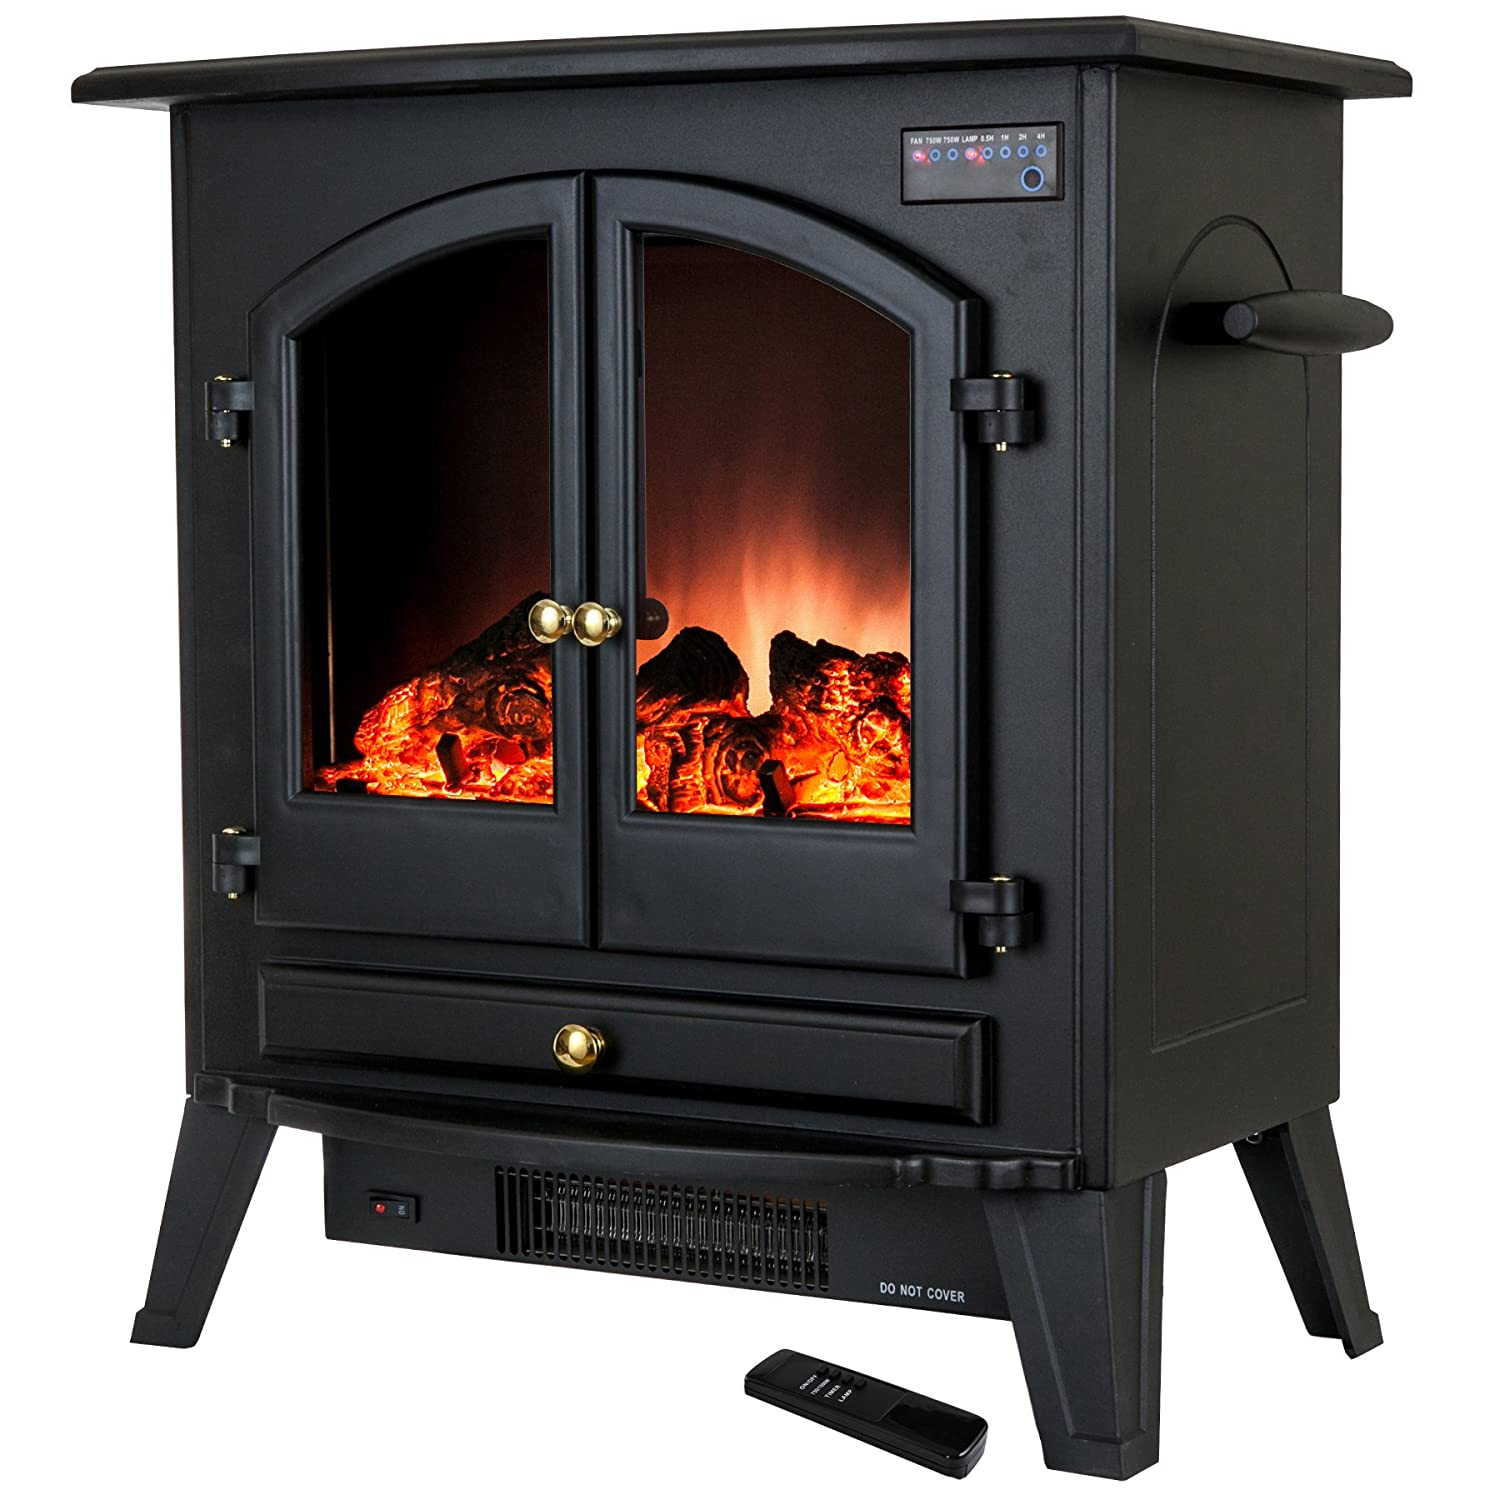 heater small stove dimplex model cream june fireplace celeste electric review glossy